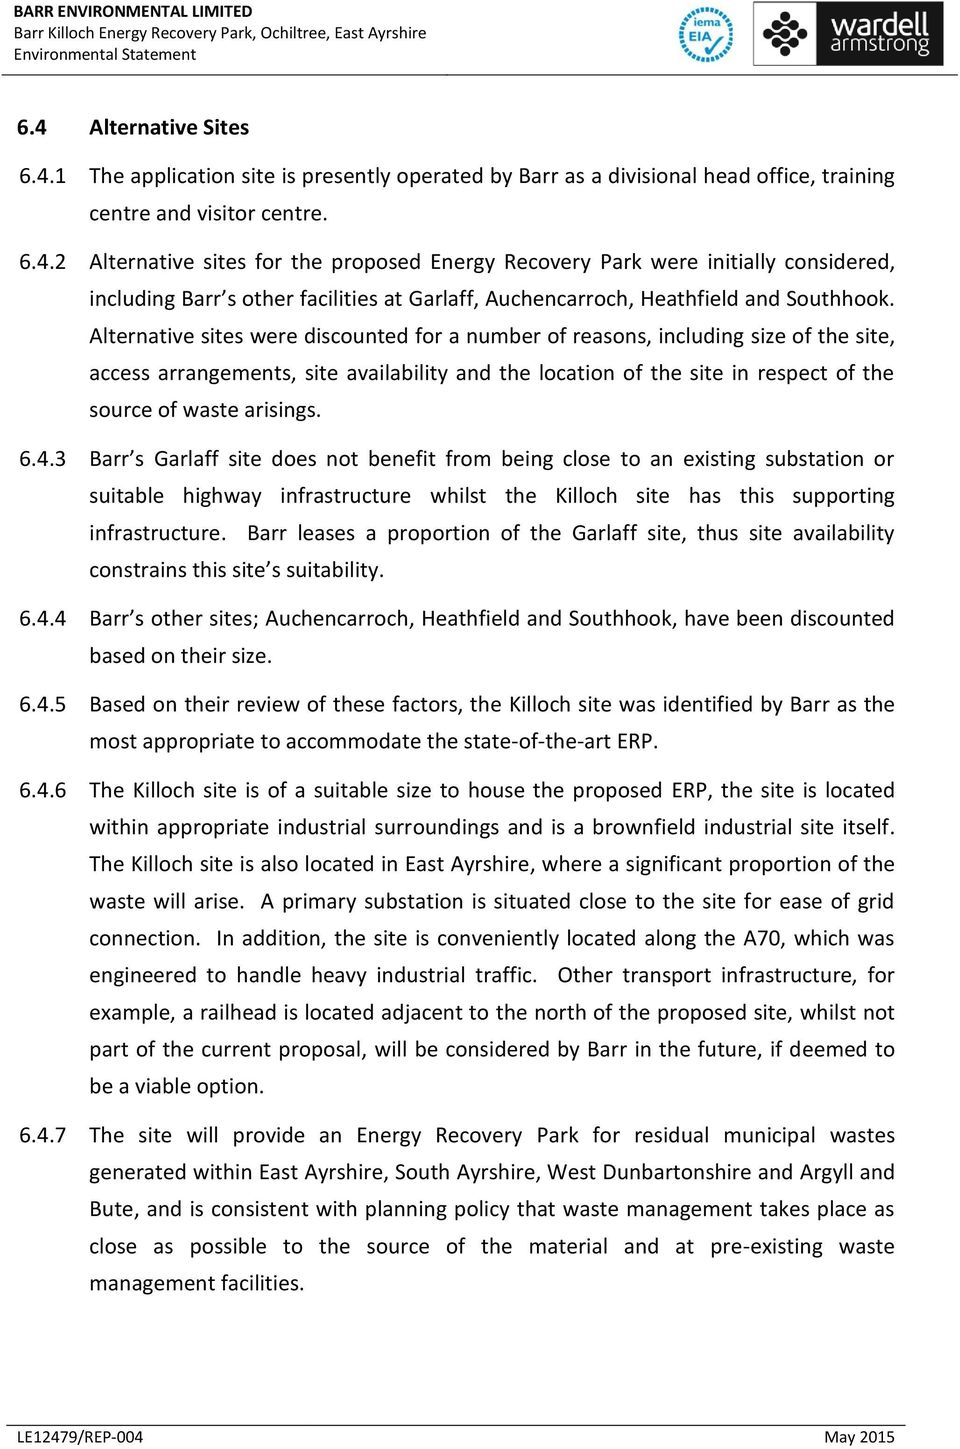 6.4.3 Barr s Garlaff site does not benefit from being close to an existing substation or suitable highway infrastructure whilst the Killoch site has this supporting infrastructure.